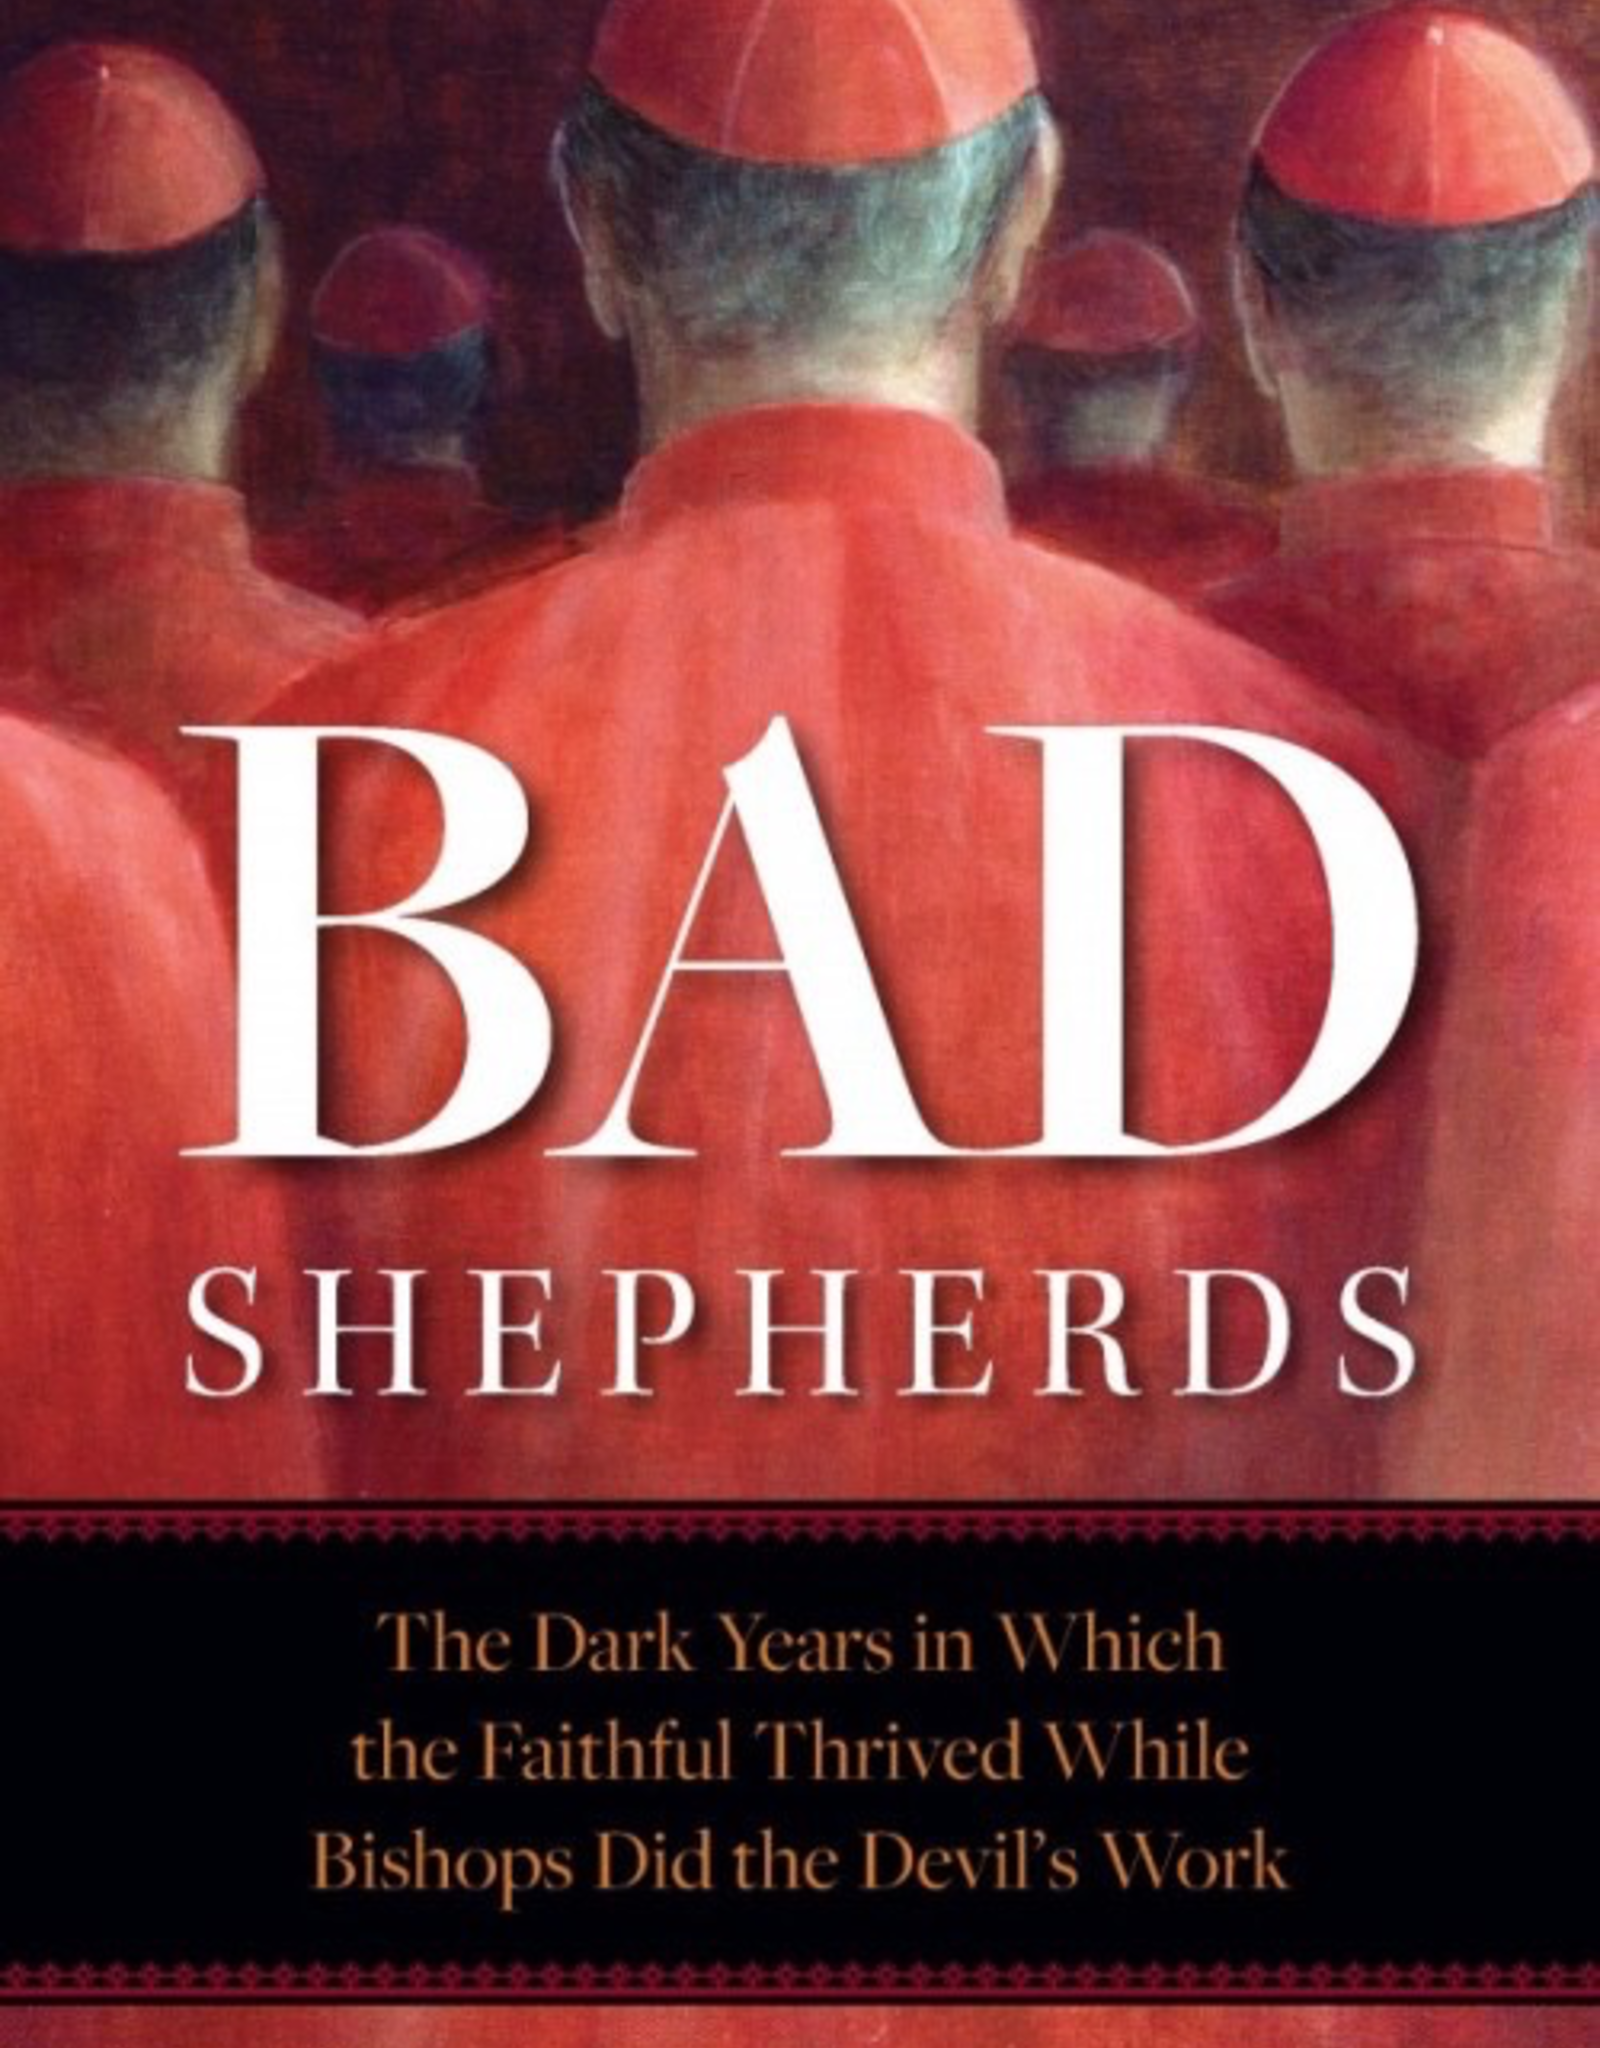 Sophia Institute Bad Shepherds:  The Dark Years in Which the Faithful Thrived While Bishops Did the Devil‰Ûªs WOrk, by Rod Bennett (paperback)